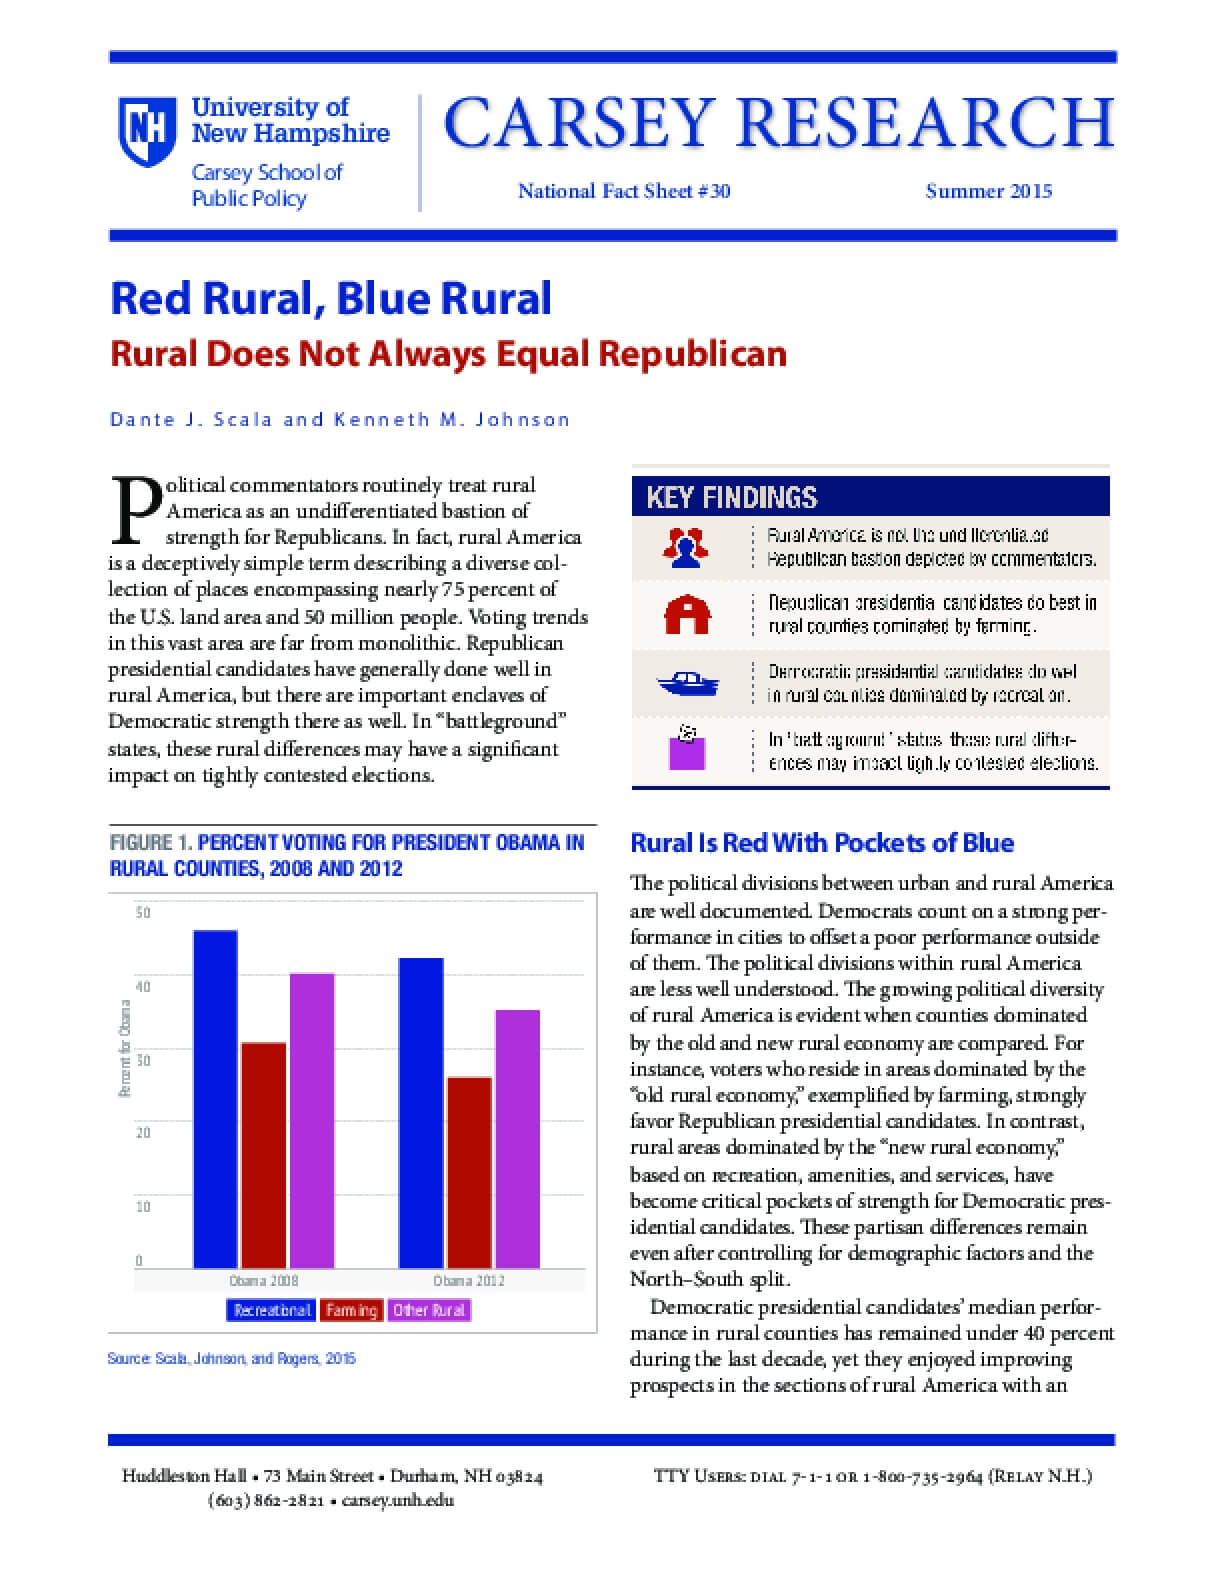 Red Rural, Blue Rural Fact Sheet